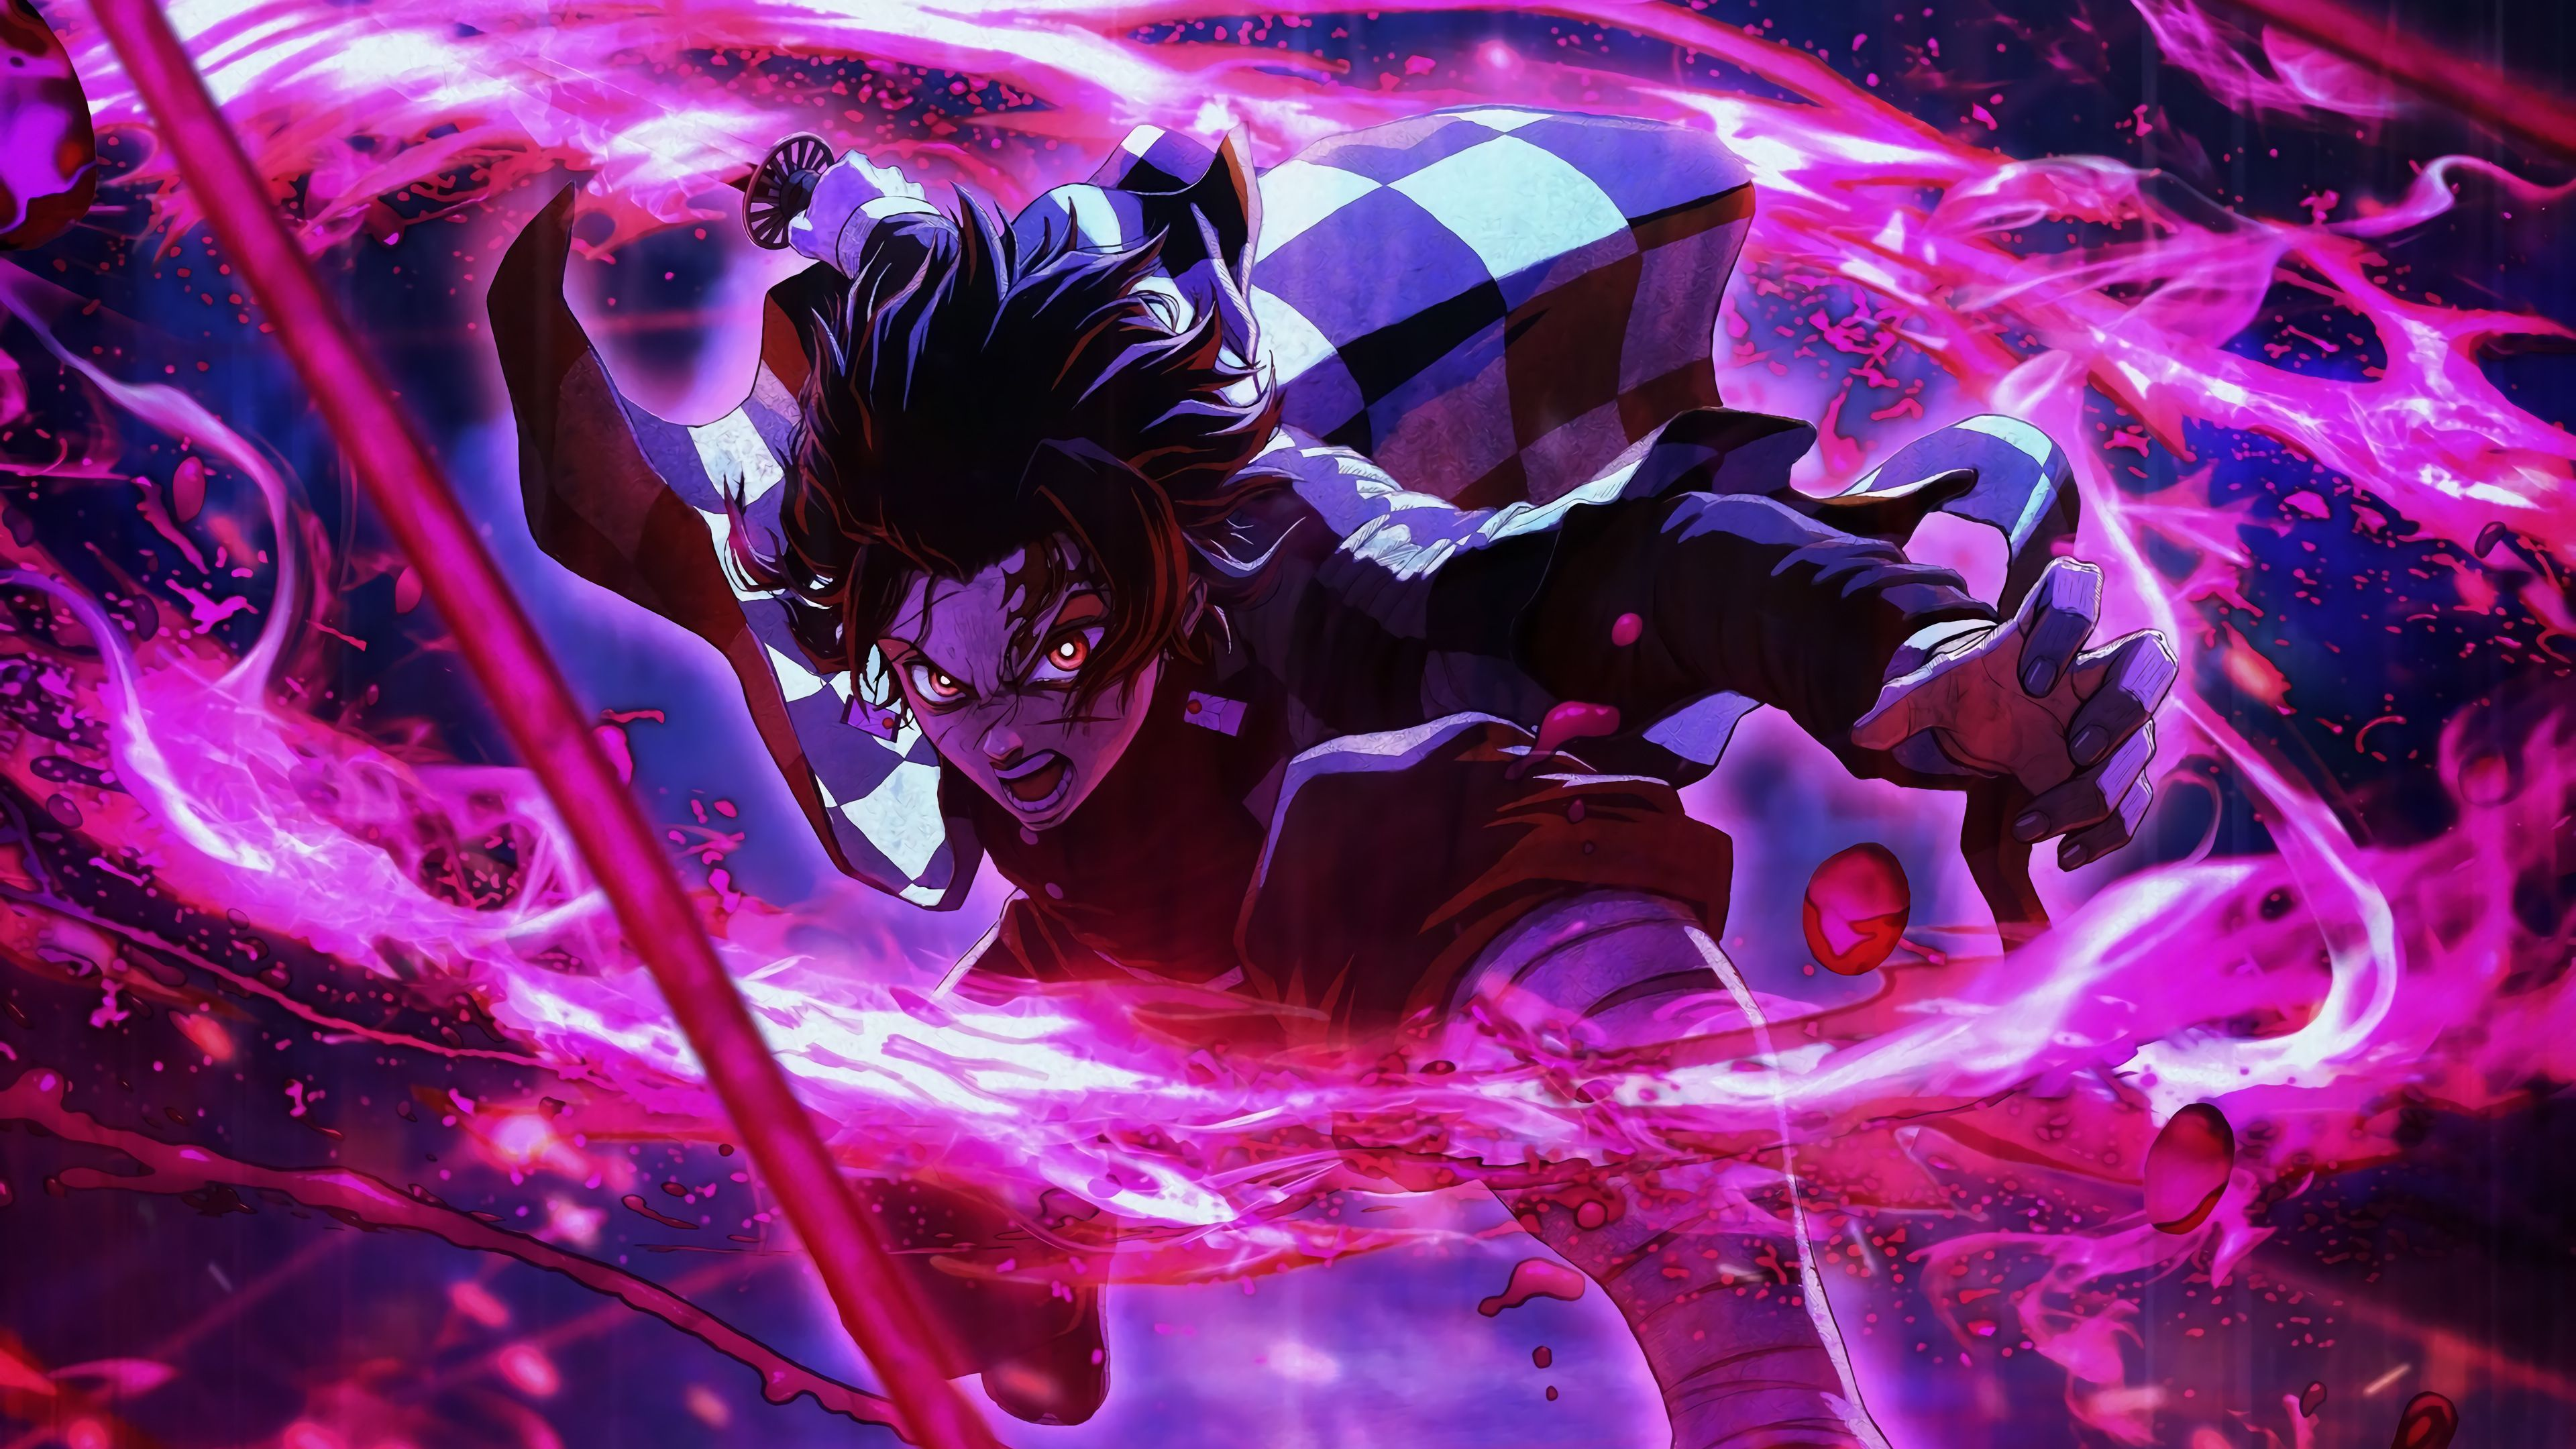 Tanjiro The Demonslayer In 2020 Cool Anime Wallpapers Hd Anime Wallpapers Anime Wallpaper